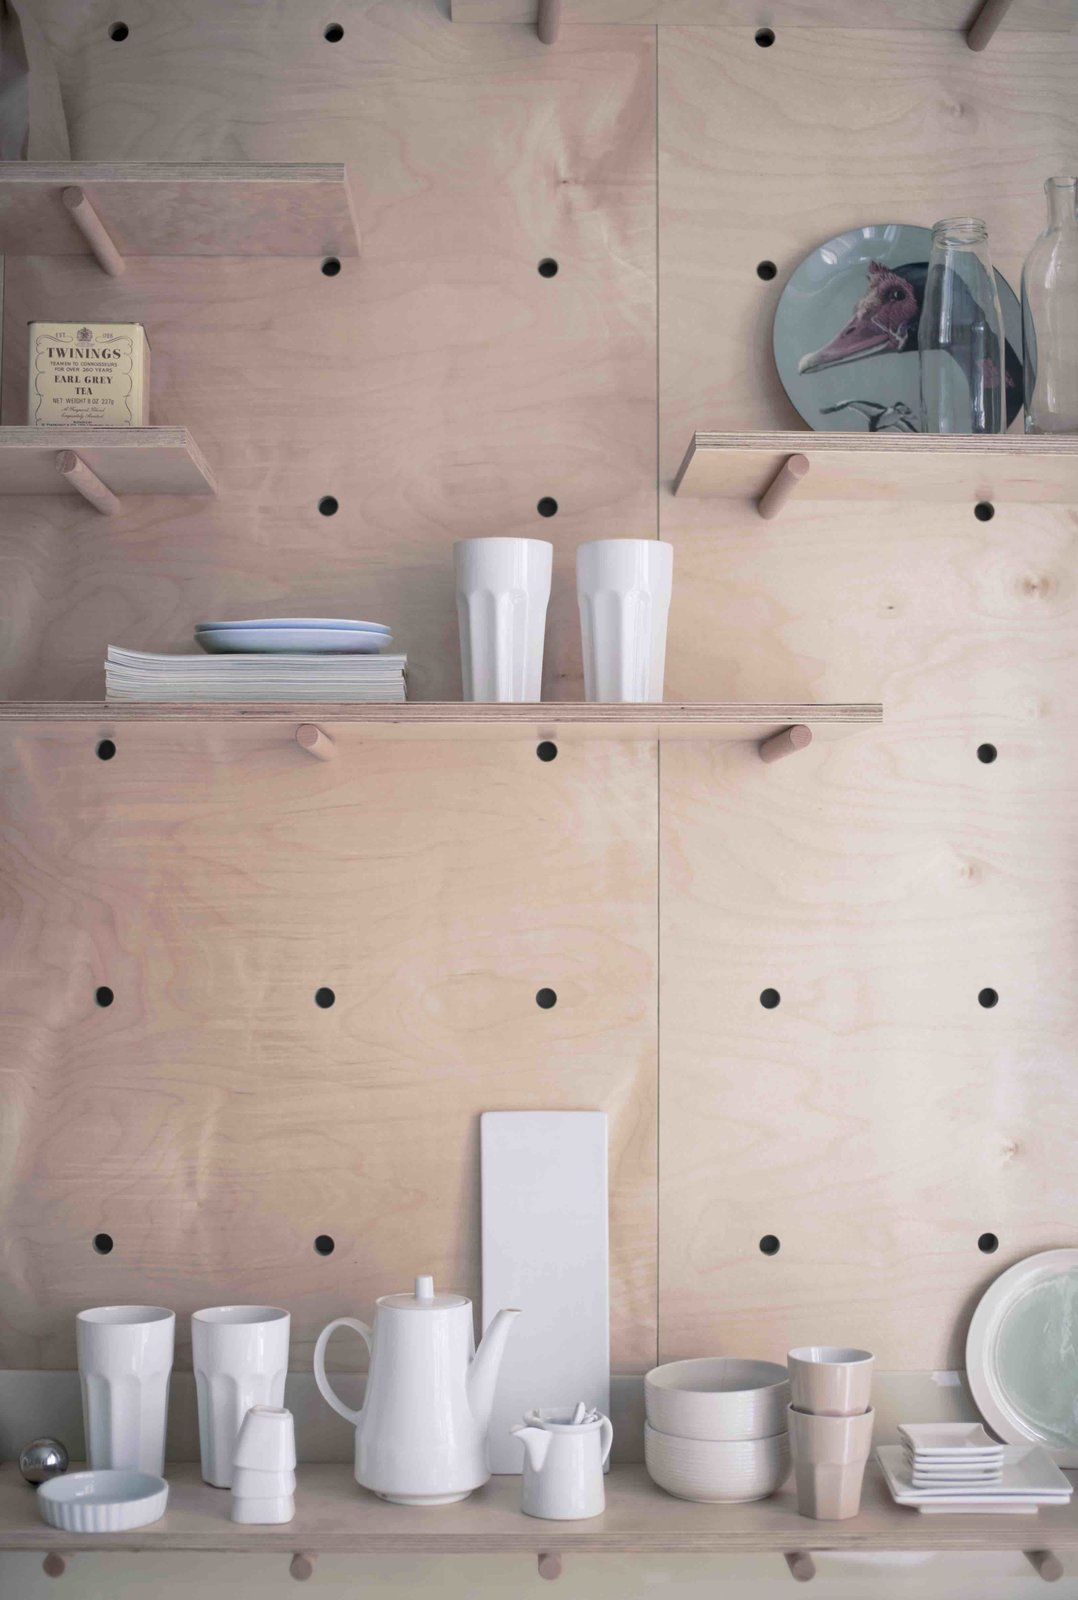 Storage Room and Shelves Storage Type  Photo 8 of 11 in 3 Smart Storage Systems Maximize Space in a Tiny Studio Apartment in Budapest